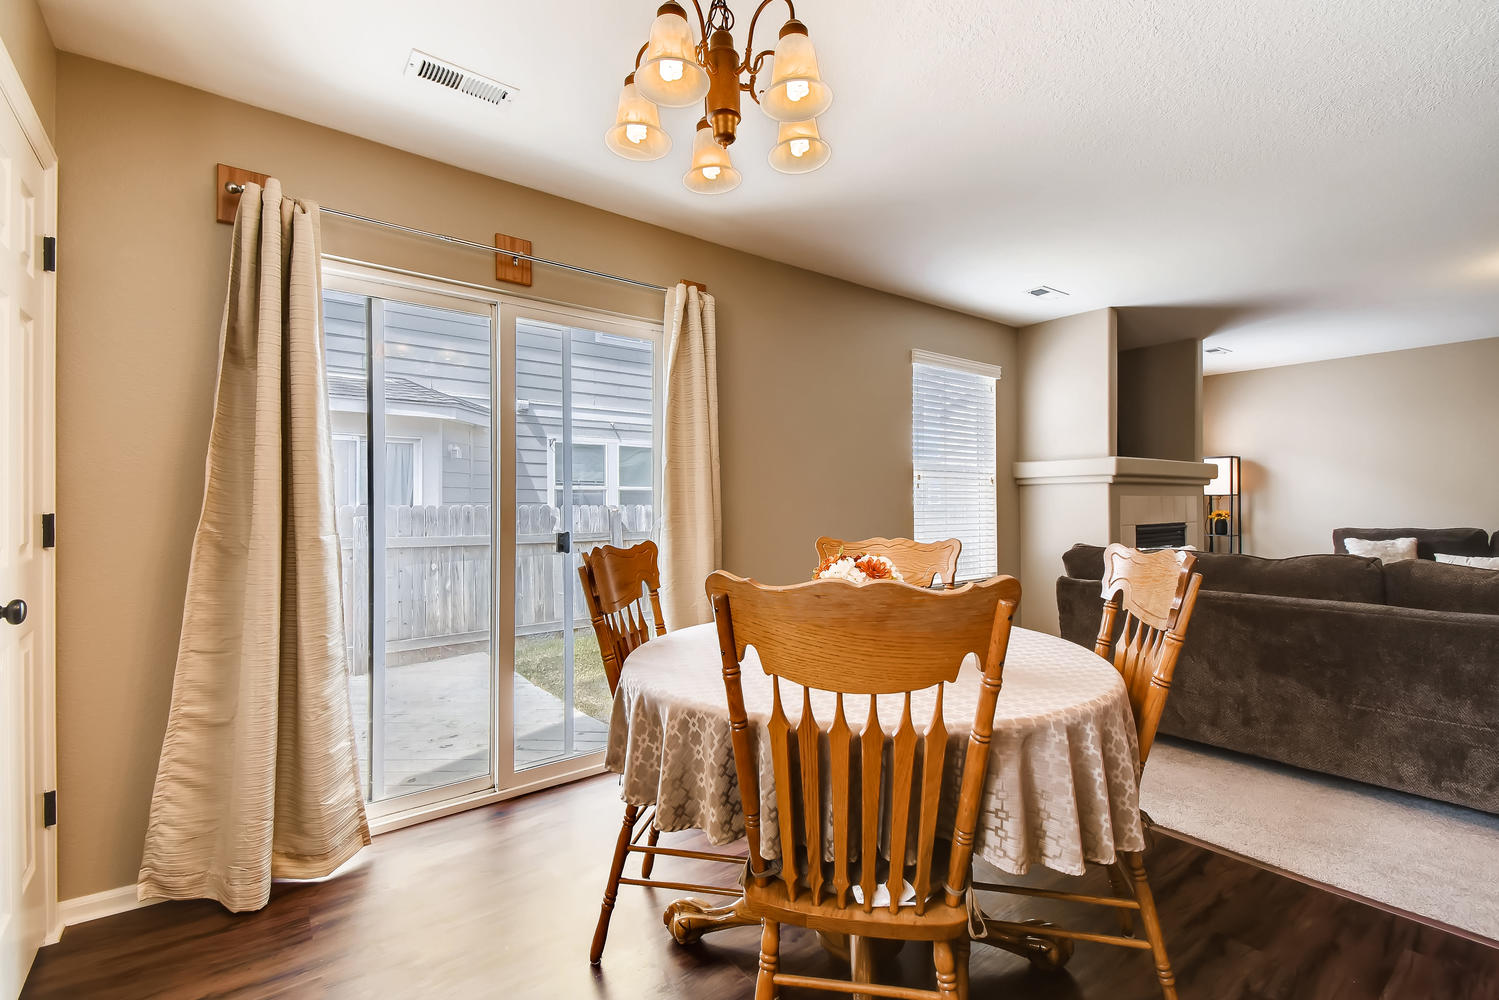 REAL ESTATE LISTING: 10595 Forester Pl Longmont CO Eating Area and Slider